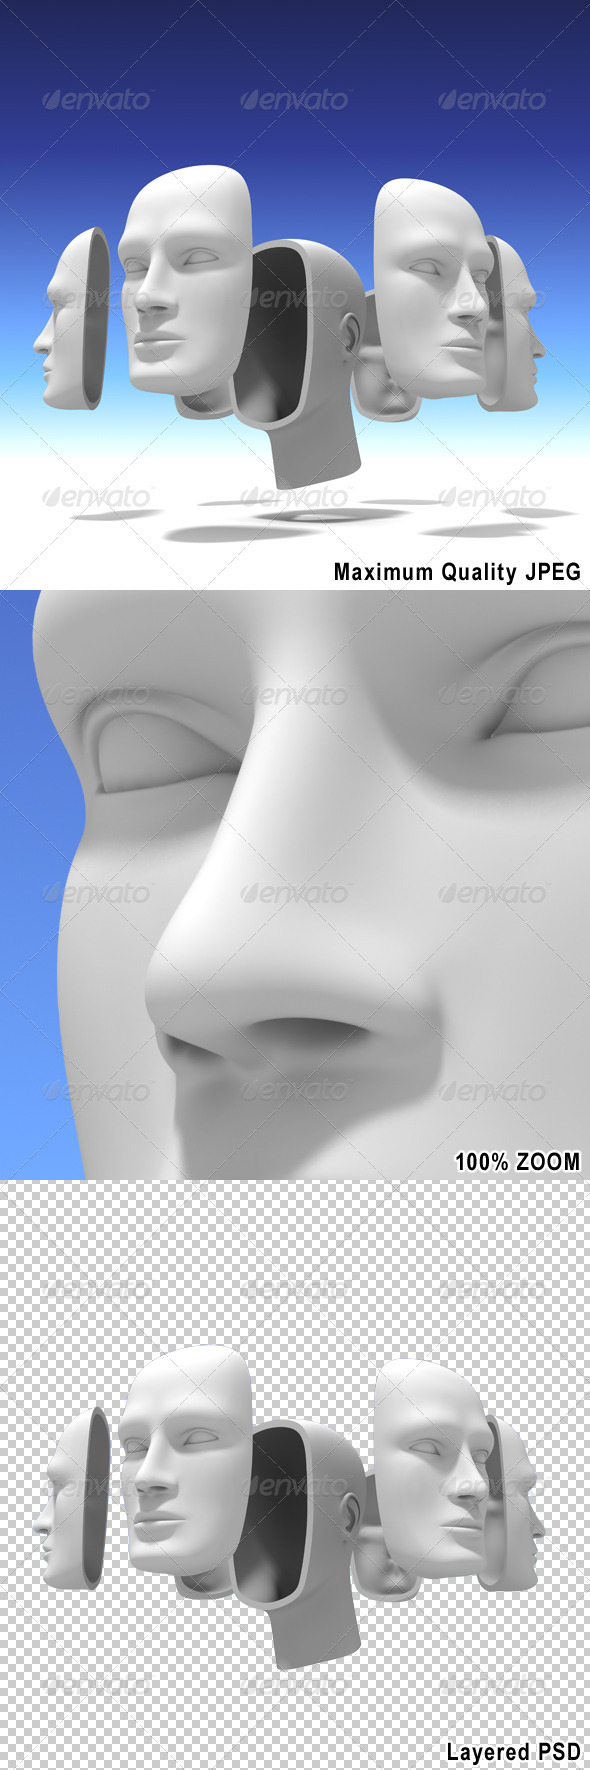 Human Head with Many Faces - Abstract 3D Renders